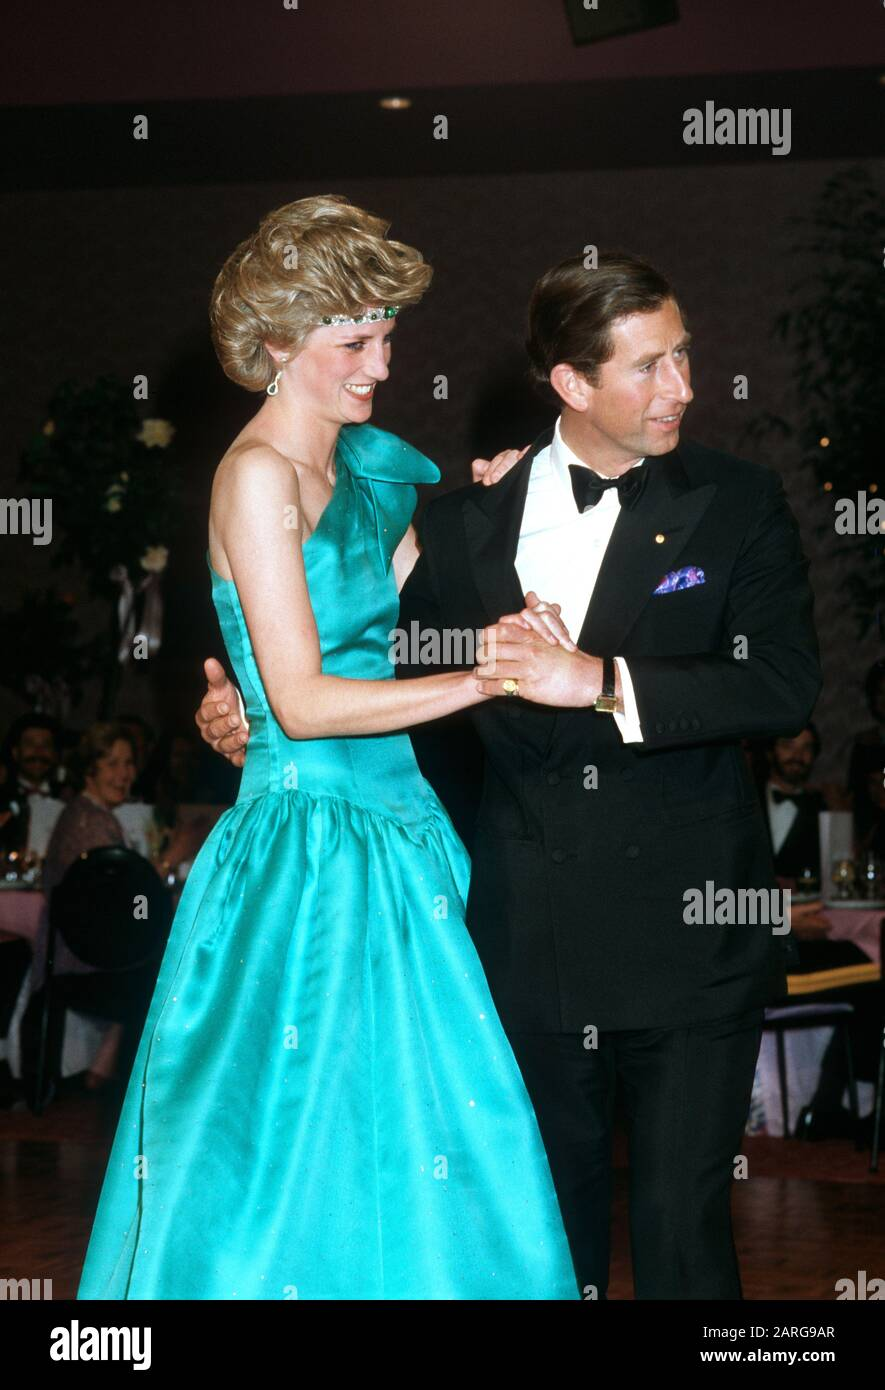 trh prince charles and princess diana dancing at the southern cross hotel melbourne australia october 1985 stock photo alamy https www alamy com trh prince charles and princess diana dancing at the southern cross hotel melbourne australia october 1985 image341492671 html